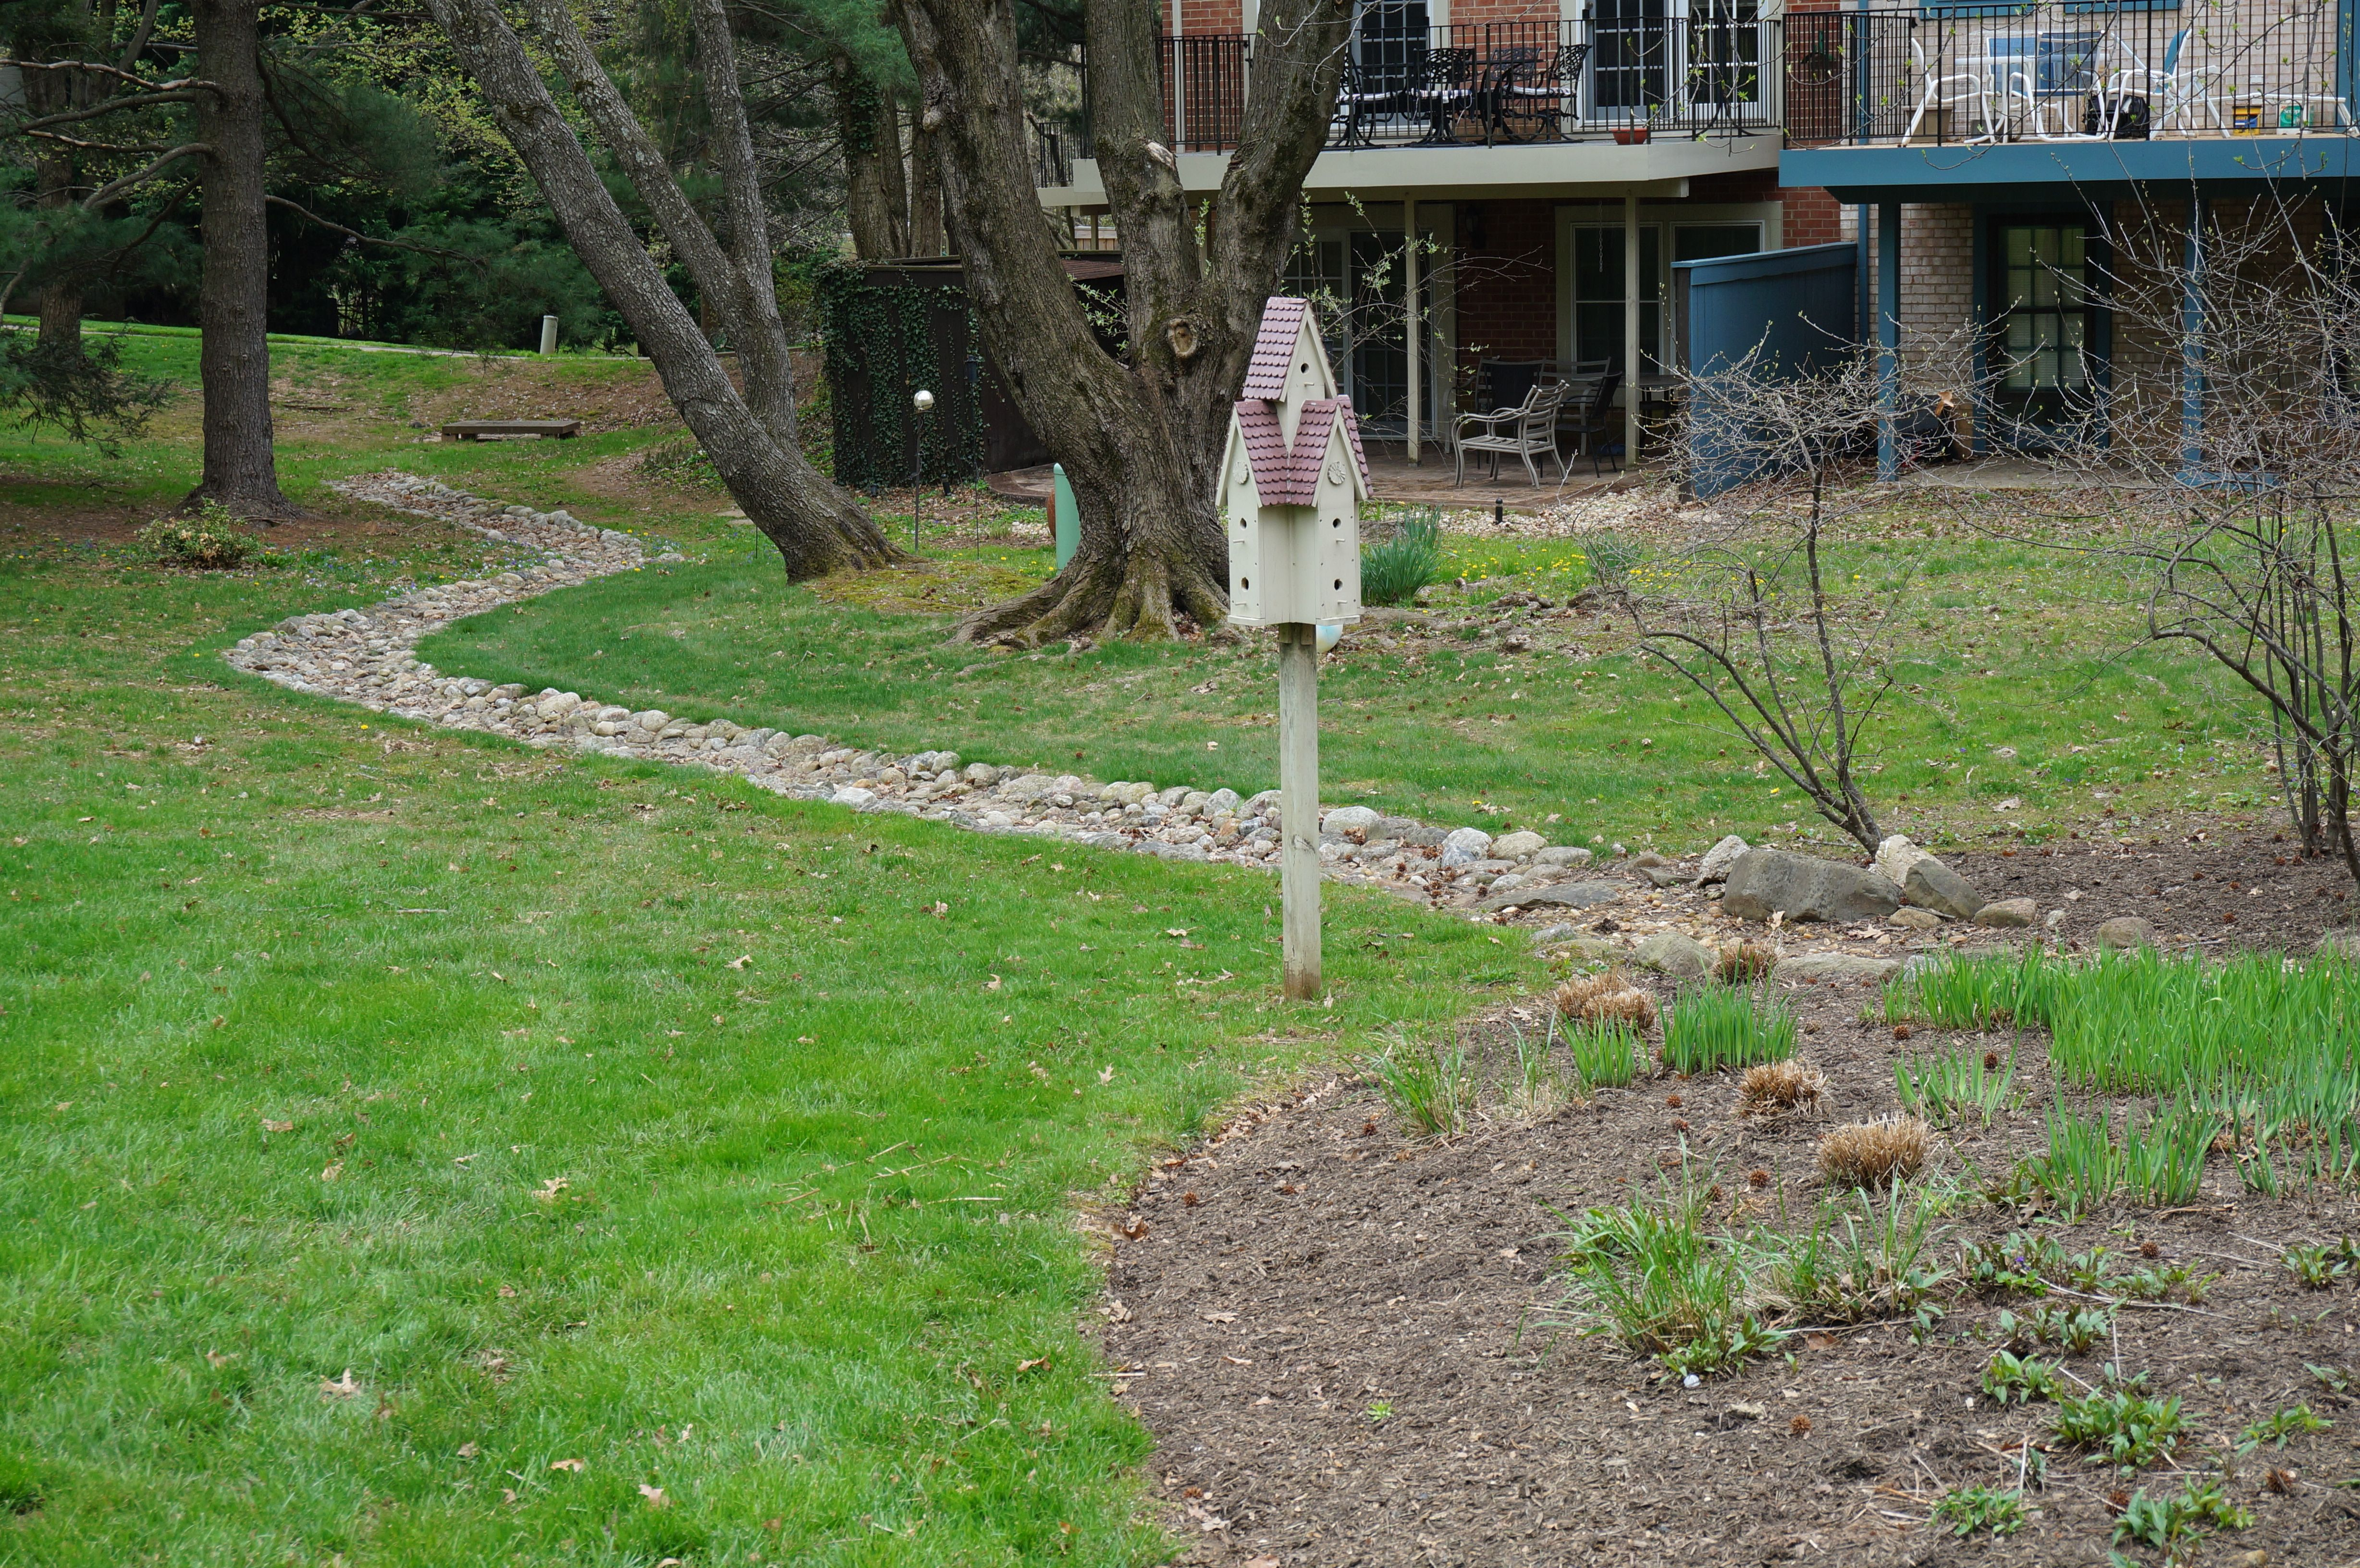 Water runoff solutions the squirrel nutwork for Drainage solutions for lawns